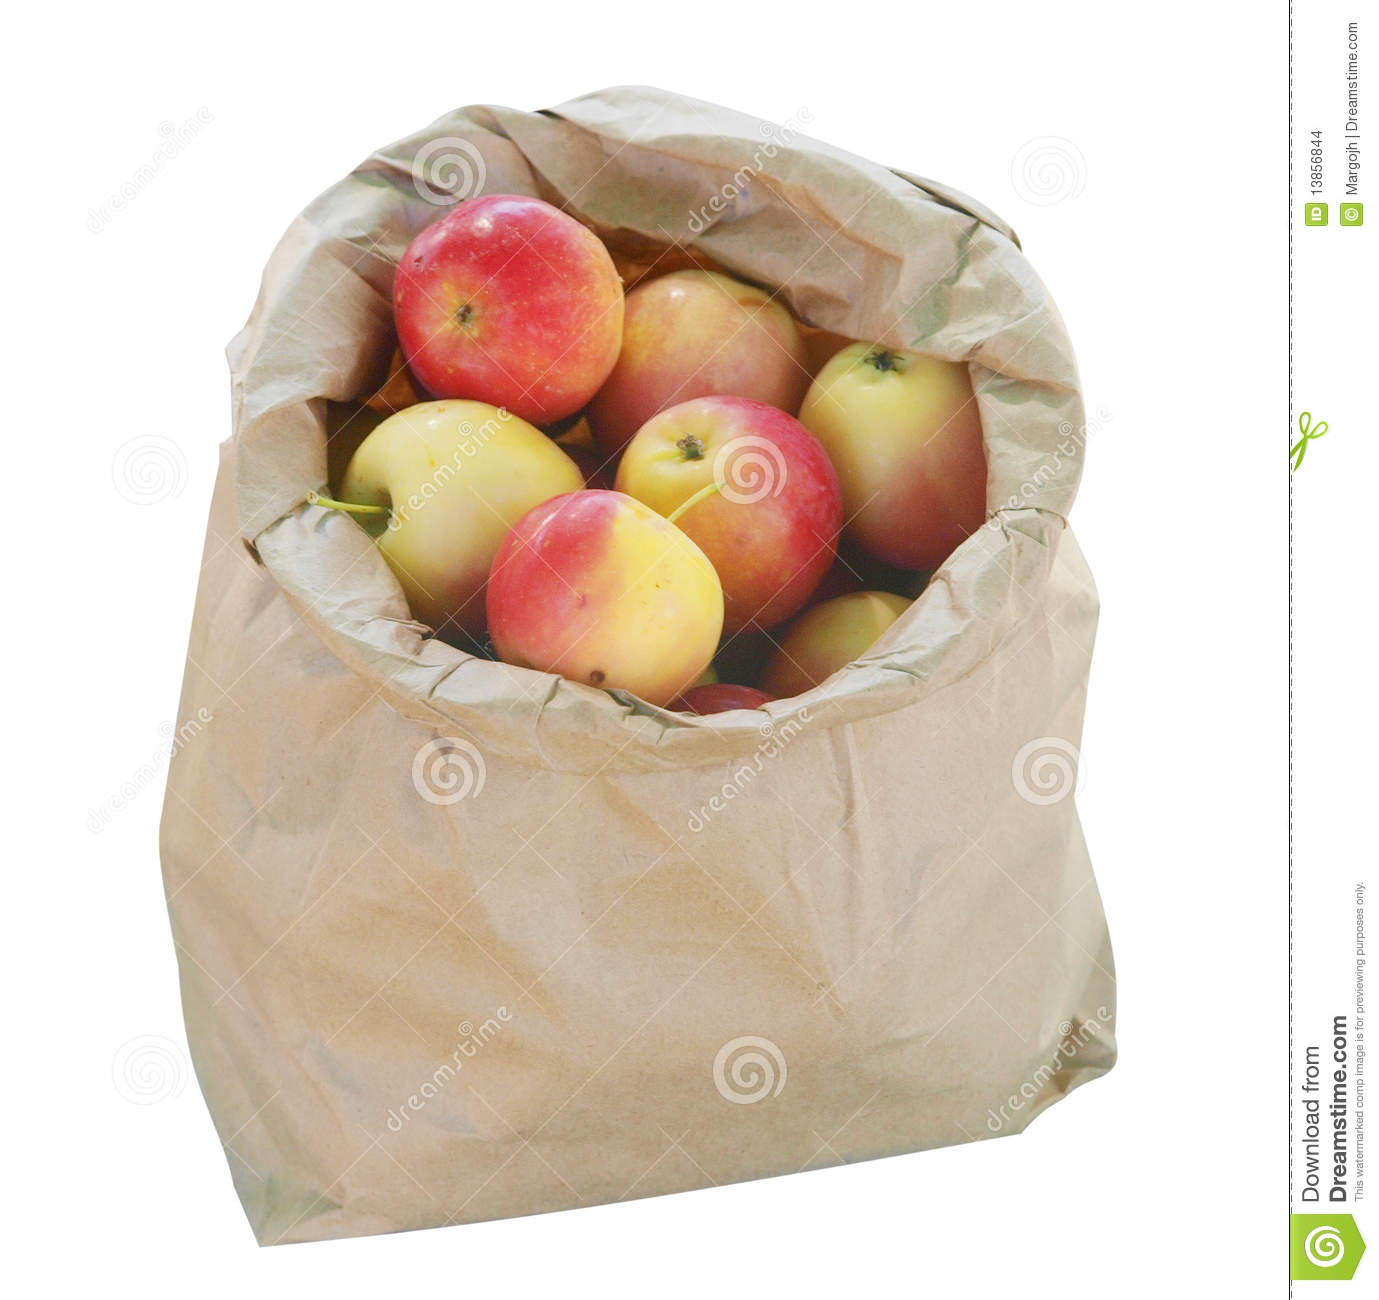 Brown paper bag and apple clipart.